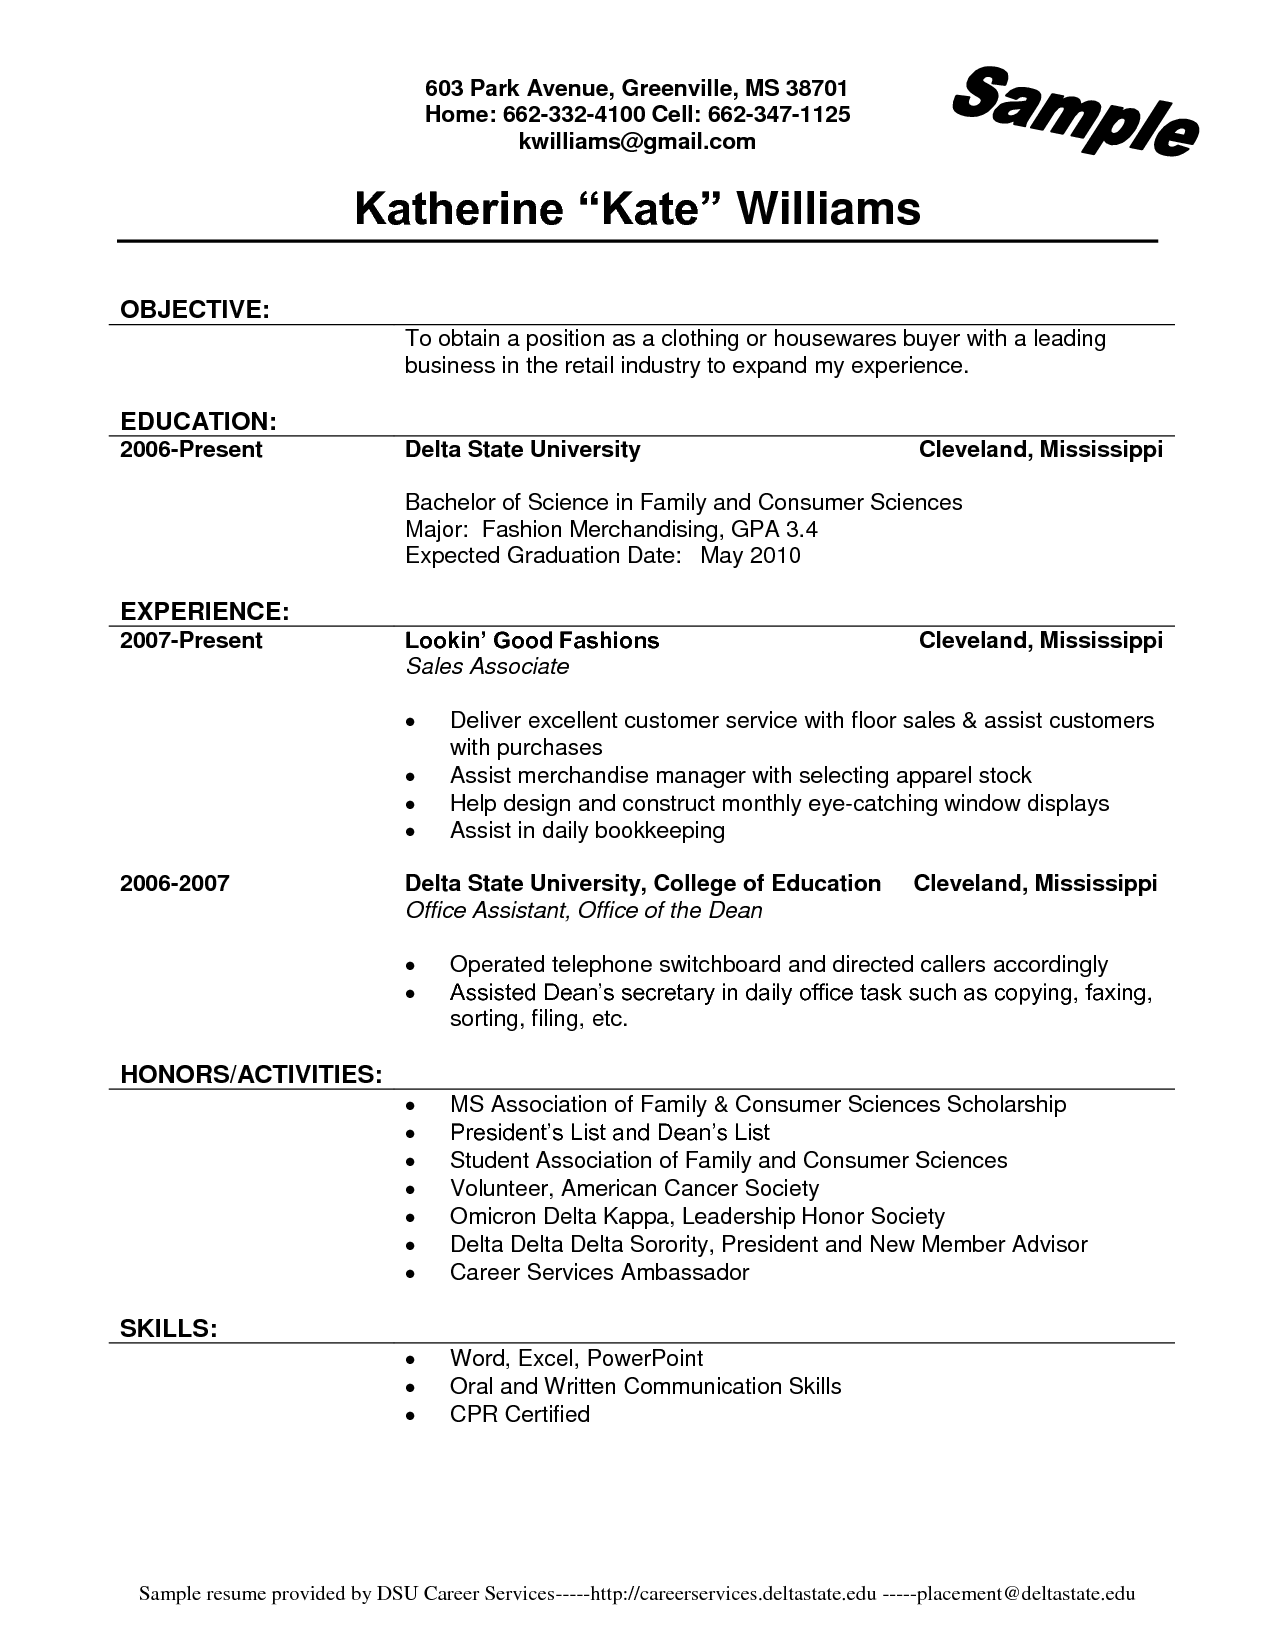 Retail Sales Resume Examples - http://www.jobresume.website/retail ...